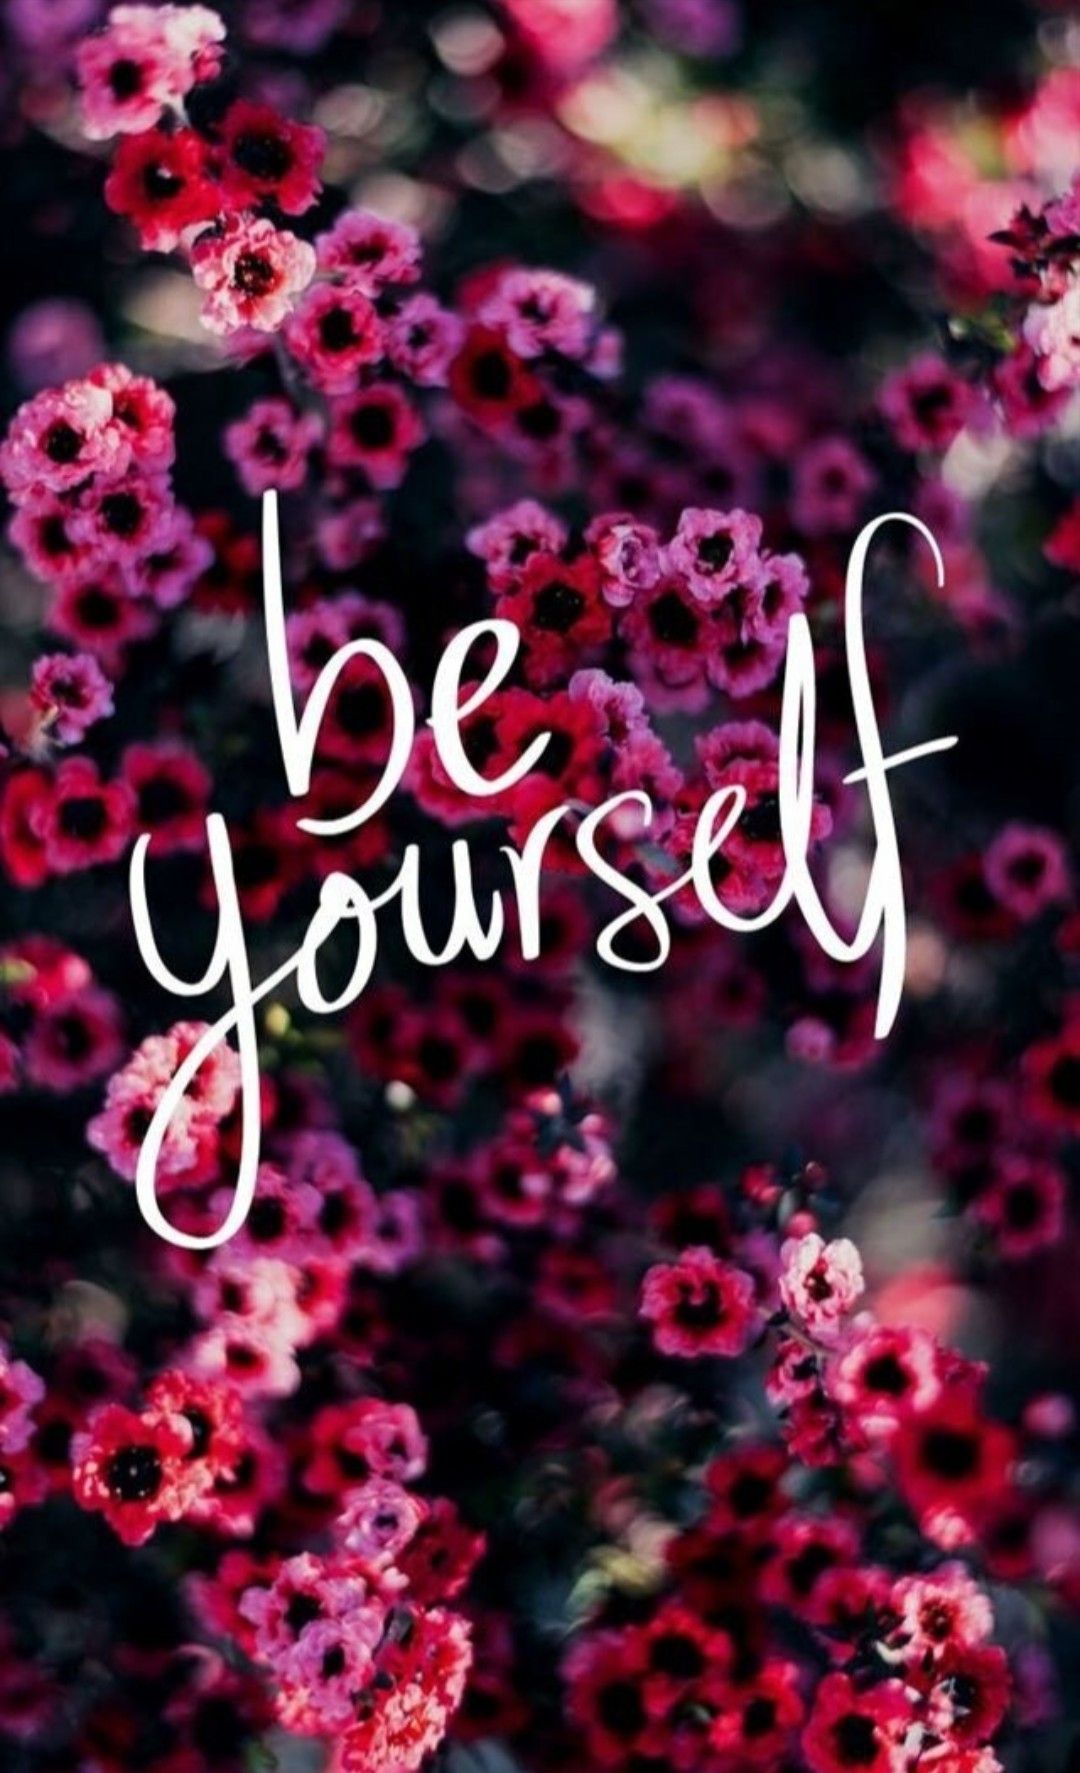 Be yourself phone wallpaper / quote/ reminder #beyourself #inspirationalphonewallpaper